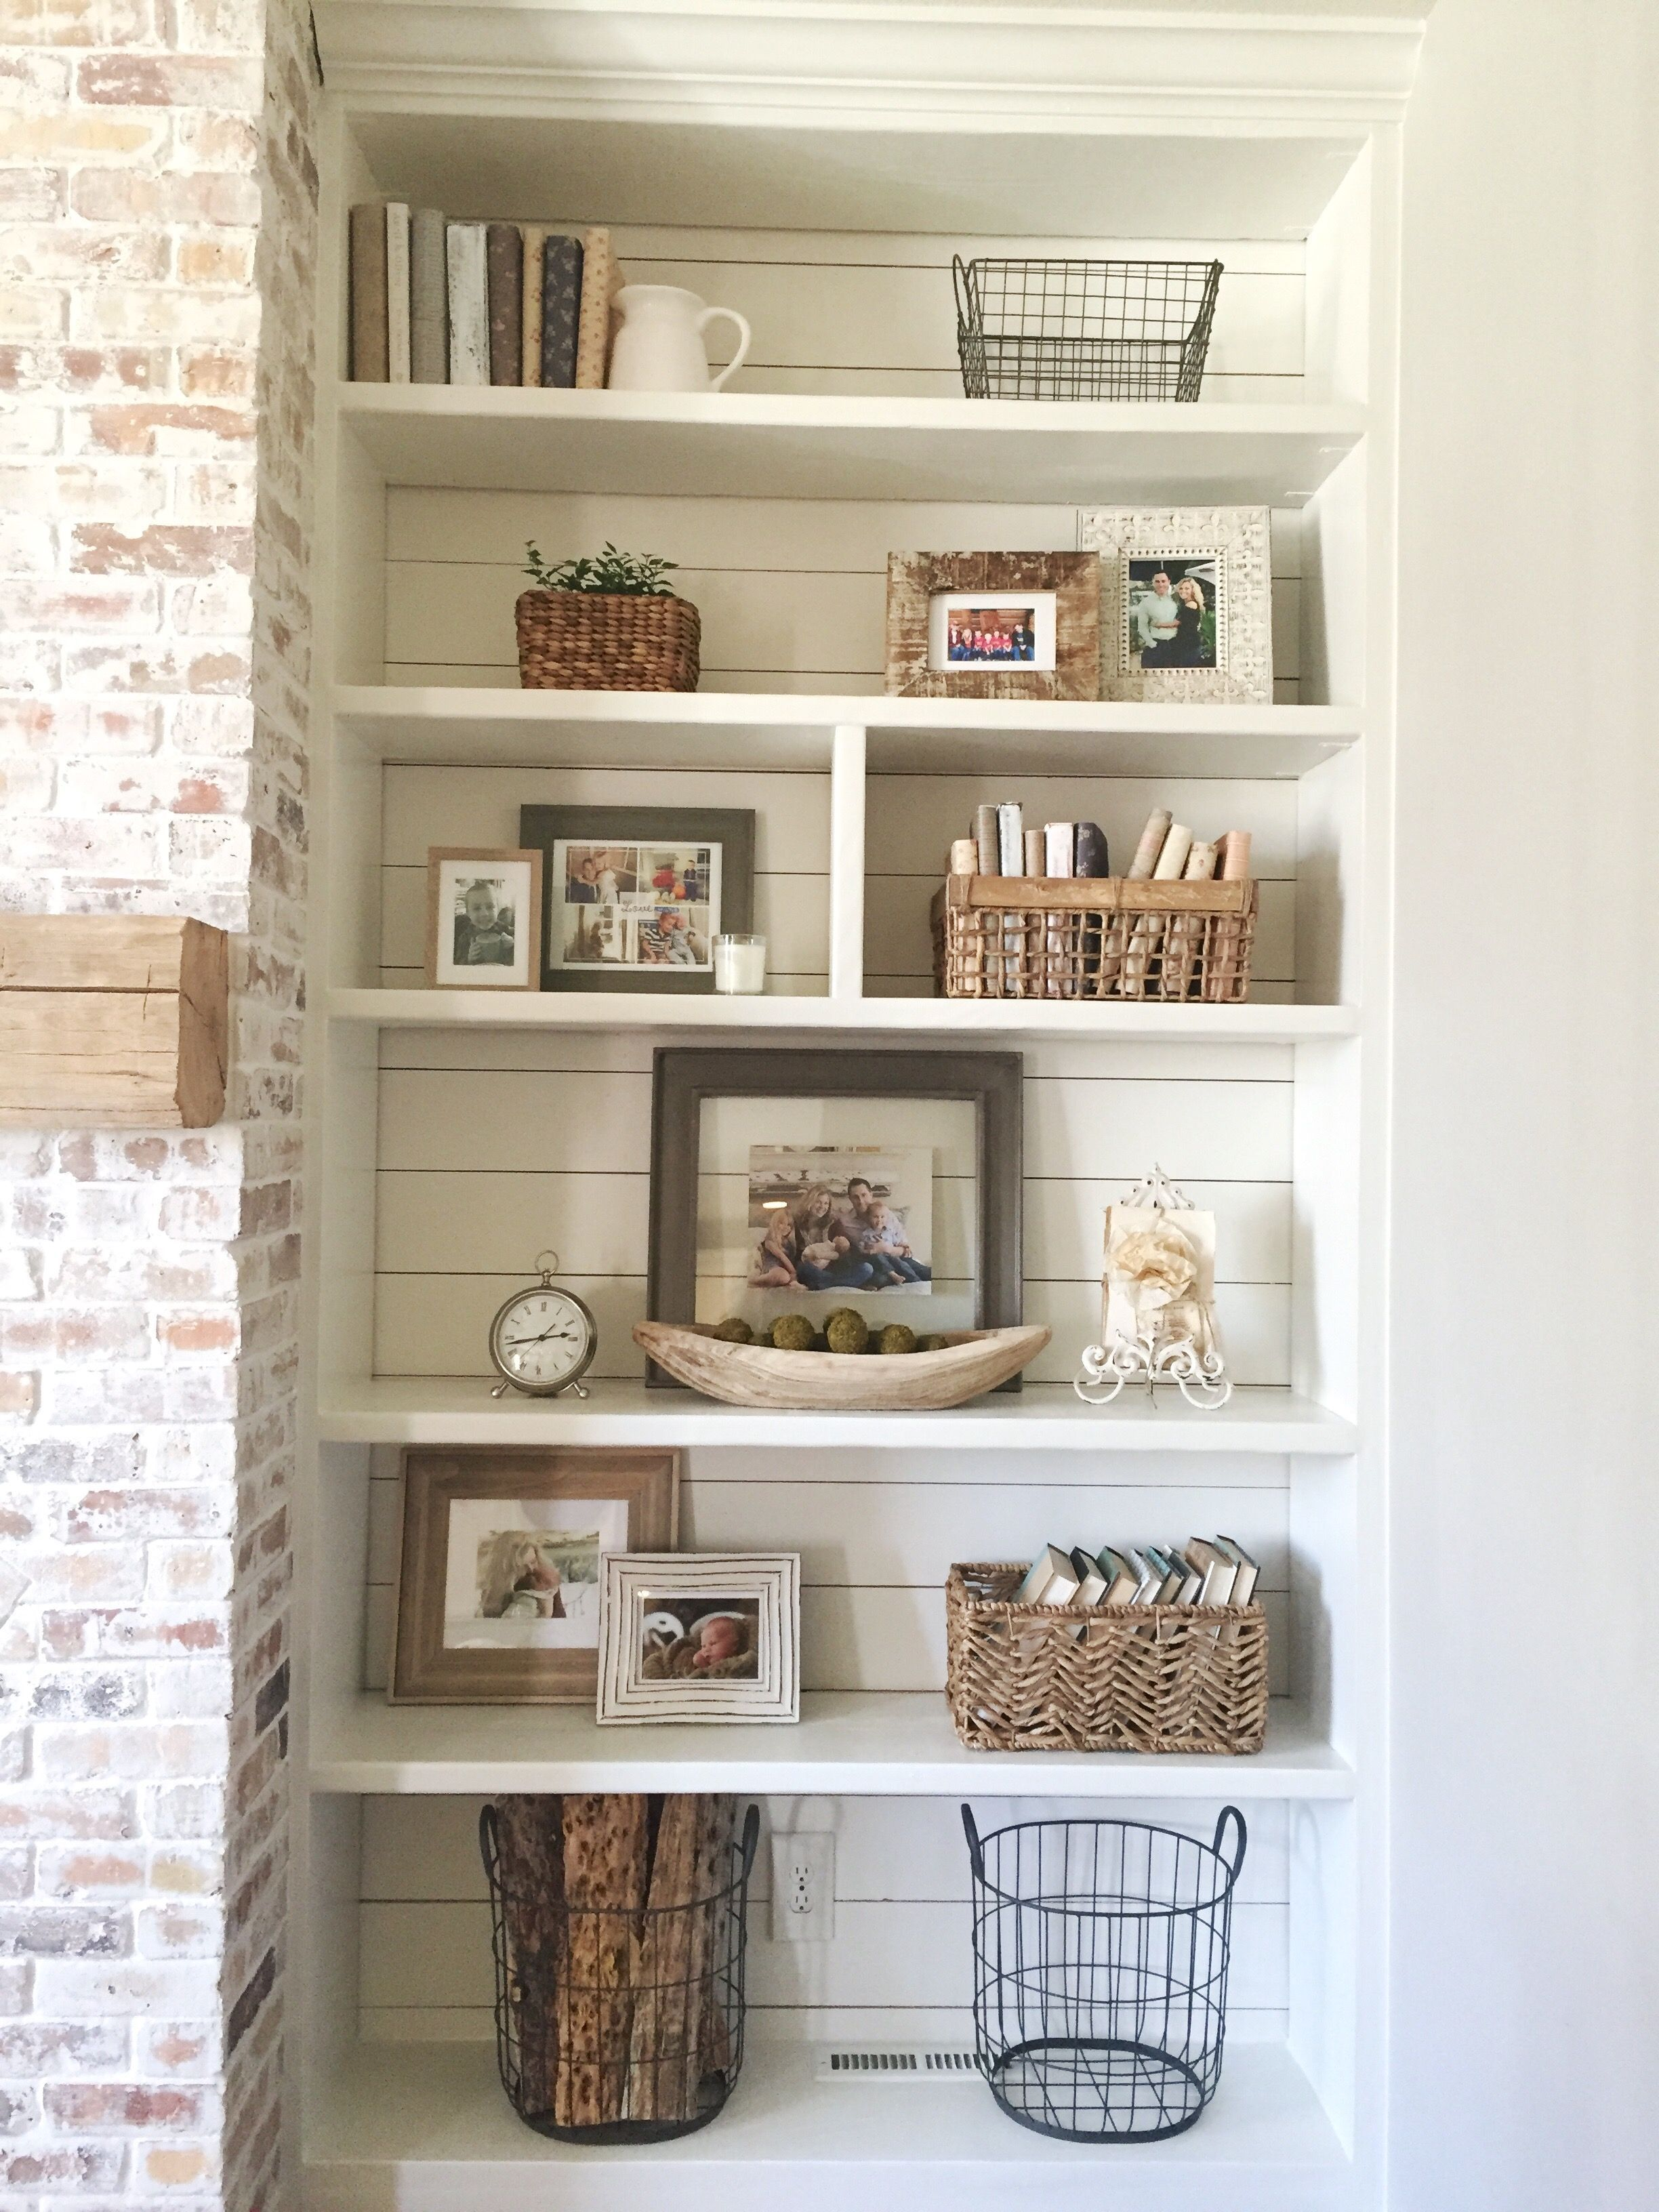 Built In Bookshelves Styling And Decor Shiplap Whitewash Brick Fireplace Rustic Mantle Bask Built In Shelves Living Room Living Room Shelves Bookcase Decor